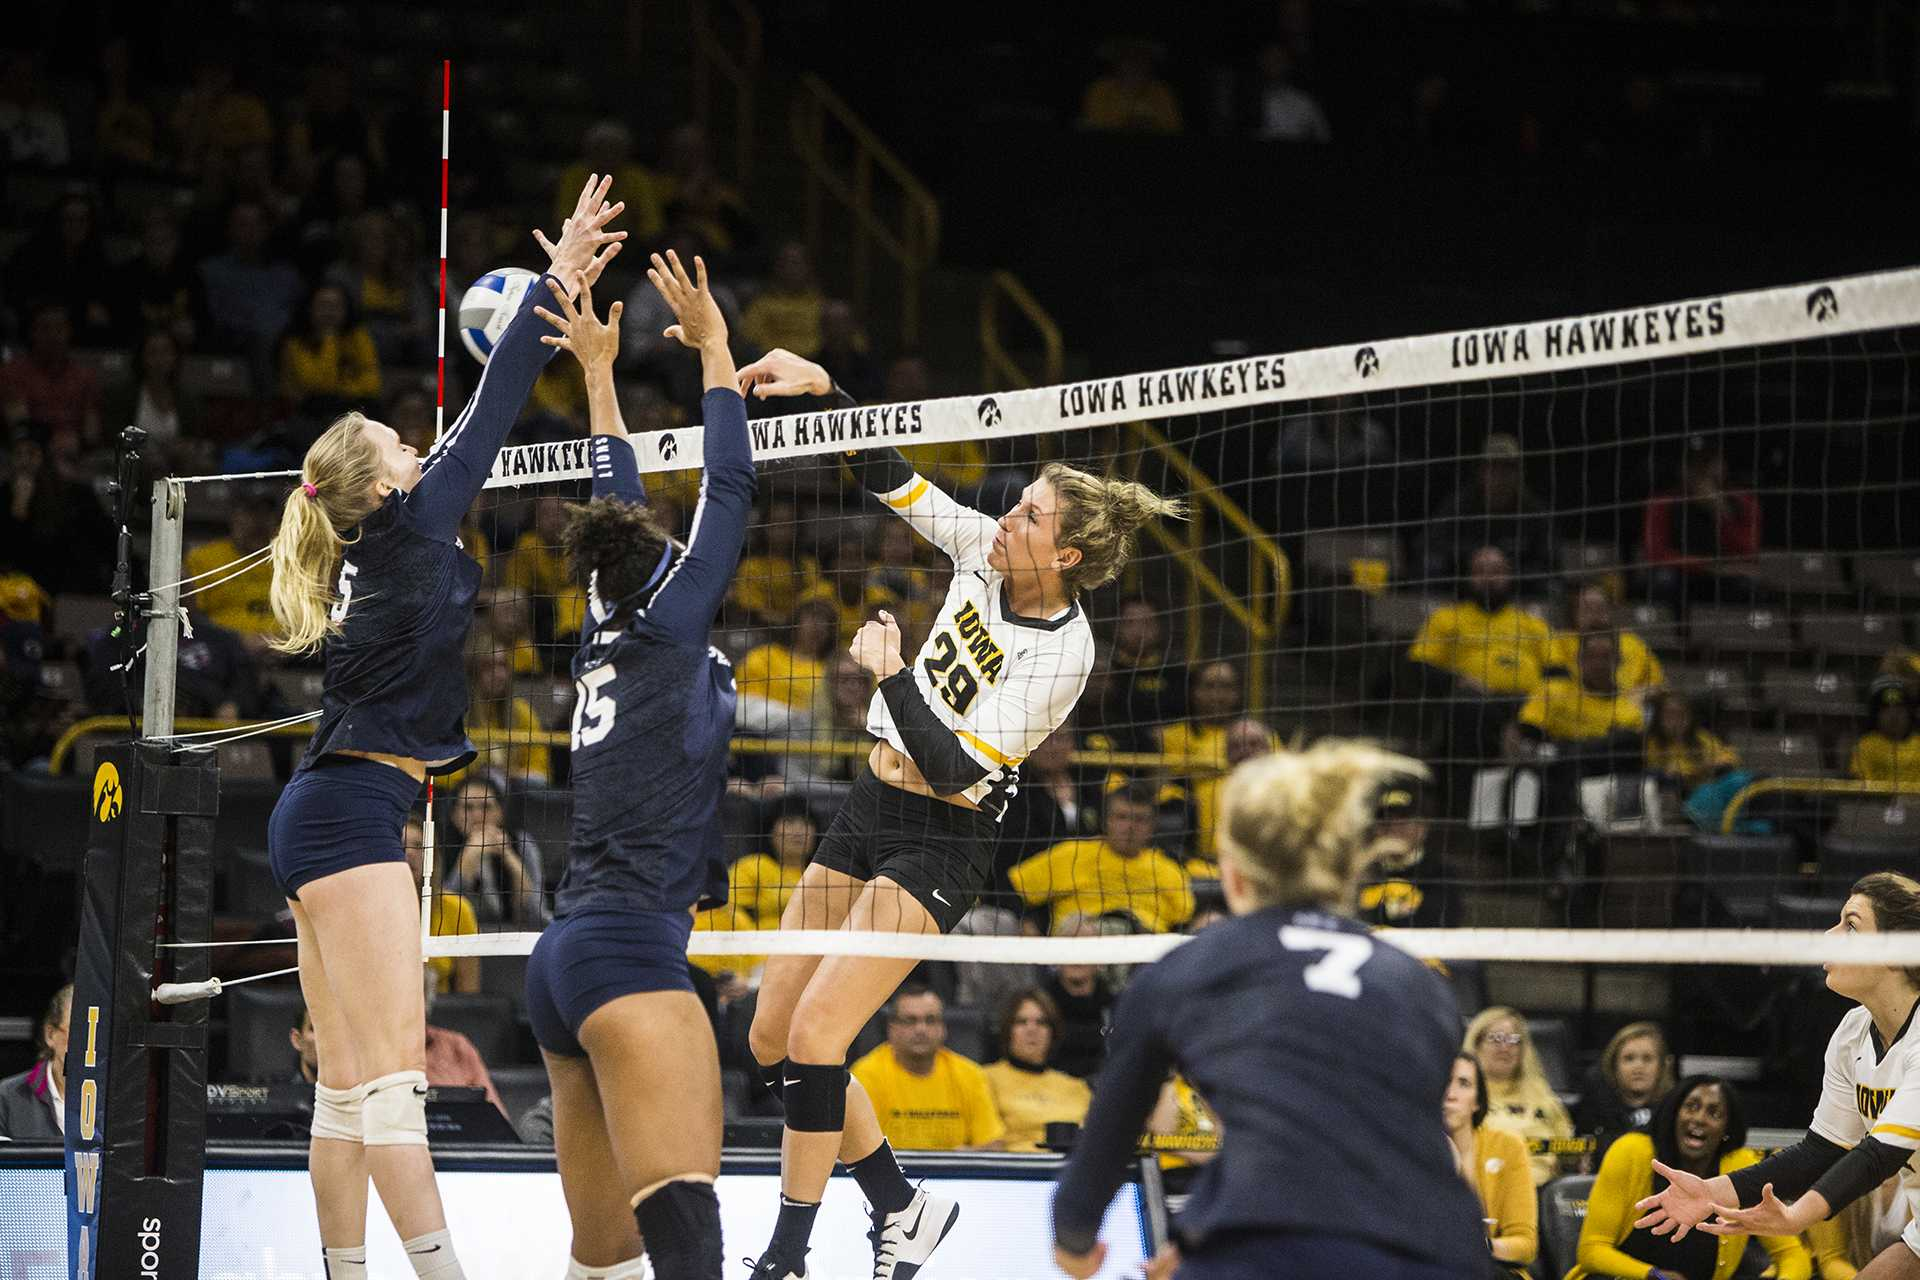 Iowa's Jess Janota (29) spikes the ball during the match between Iowa and Penn State at Carver-Hawkeye Arena on Wednesday, Nov. 8, 2017. The Hawkeyes lost to the Nittany Lions 3-0. (Ben Smith/The Daily Iowan)